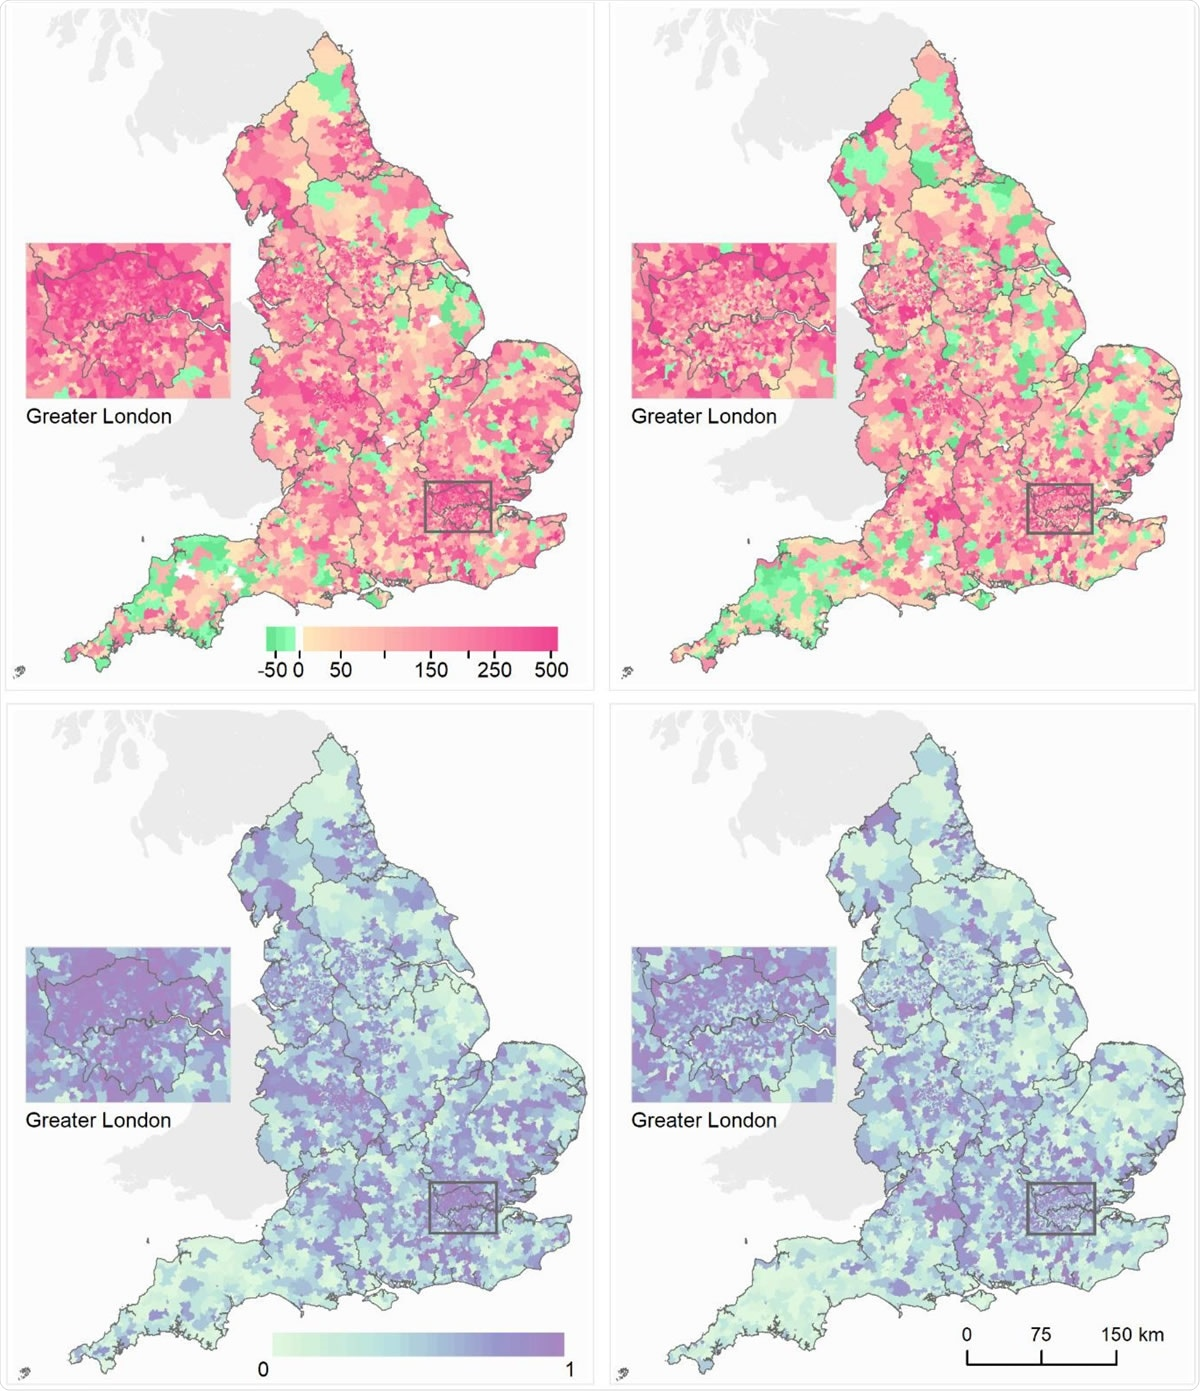 Maps of middle super output areas (MSOAs) in England showing excess deaths per 100,000 people aged 40 years and over. (A) Excess deaths per 100,000 males (left)/females (right) from 1 March to 31 May 2020 compared to the same period for the preceding five years. (B) Posterior probability that excess deaths > 0. Community characteristics of the MSOAs were: % population on income support; population density; % population non-White; % population living in overcrowded homes; air pollution (NO2 and PM2.5); care homes per 1,000 population. We map the posterior probability which measures the extent to which an estimate of excess/fewer deaths is likely to be a true increase/decrease. Where the entire posterior distribution of estimated excess deaths for an MSOA is greater than zero, there is a posterior probability of ~1 of a true increase, and conversely where the entire posterior distribution is less than zero there is a posterior probability of ~0 of a true increase. This posterior probability would be ~0.5 in an MSOA in which an increase is statistically indistinguishable from a decrease.